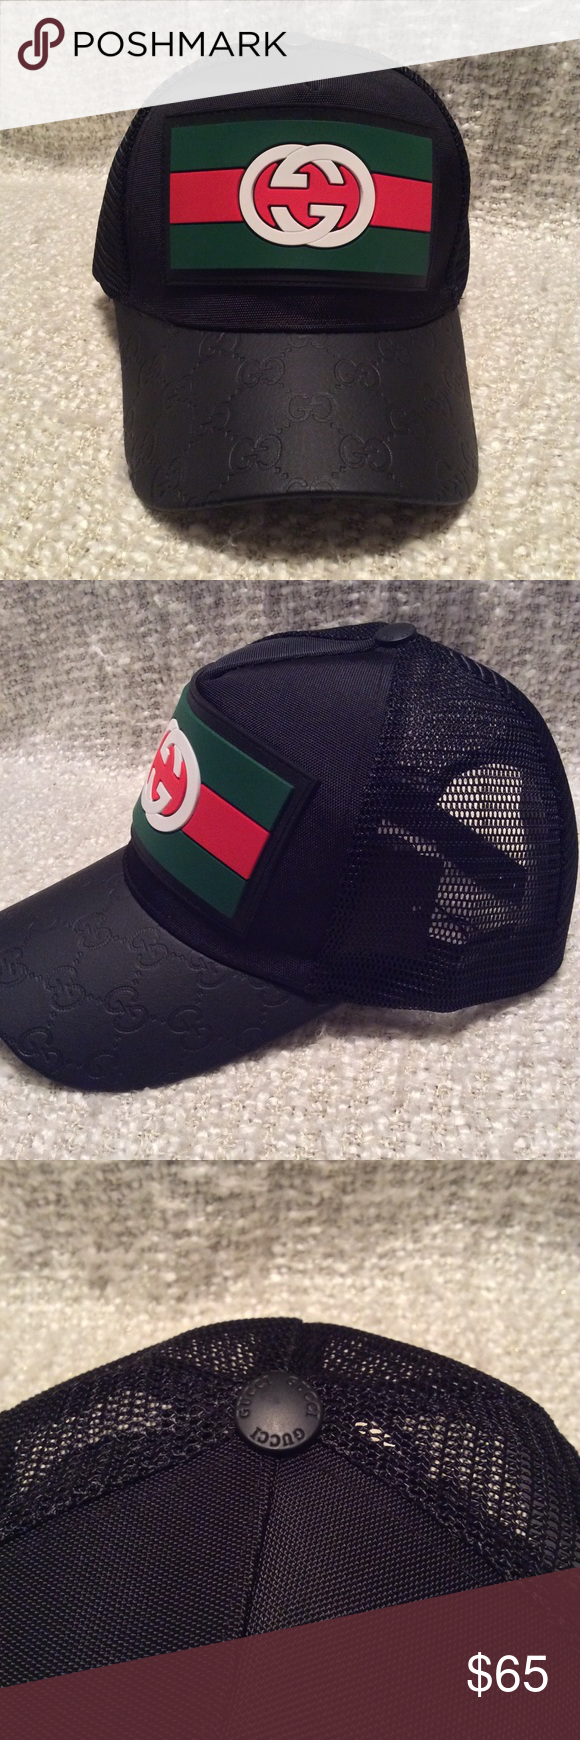 84c2f4caf46 Gucci hat unisex Gucci hat unisex new with tag Gucci Accessories Hats